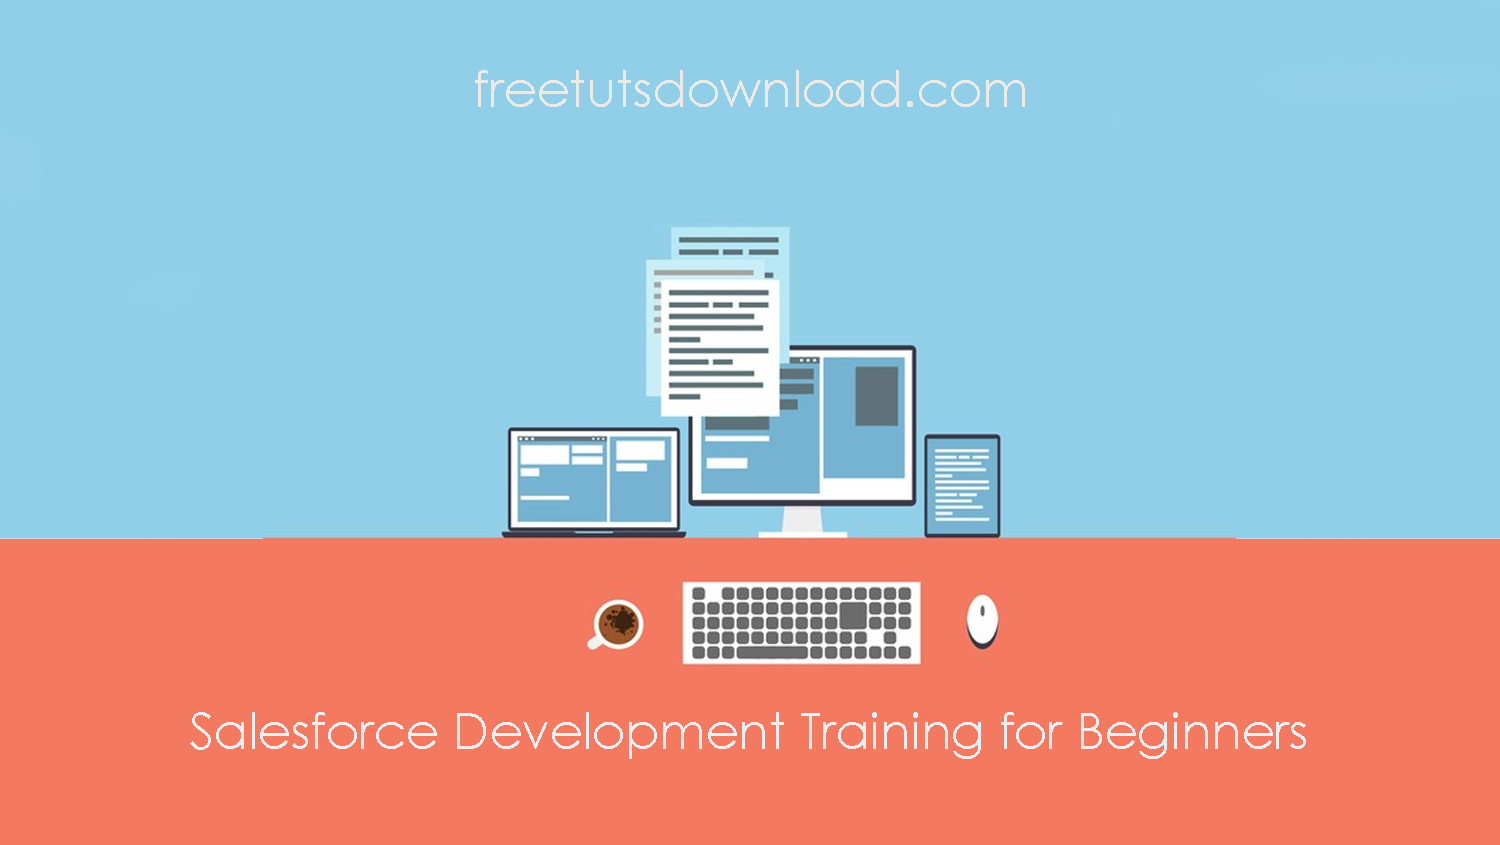 Salesforce Development Training for Beginners free download